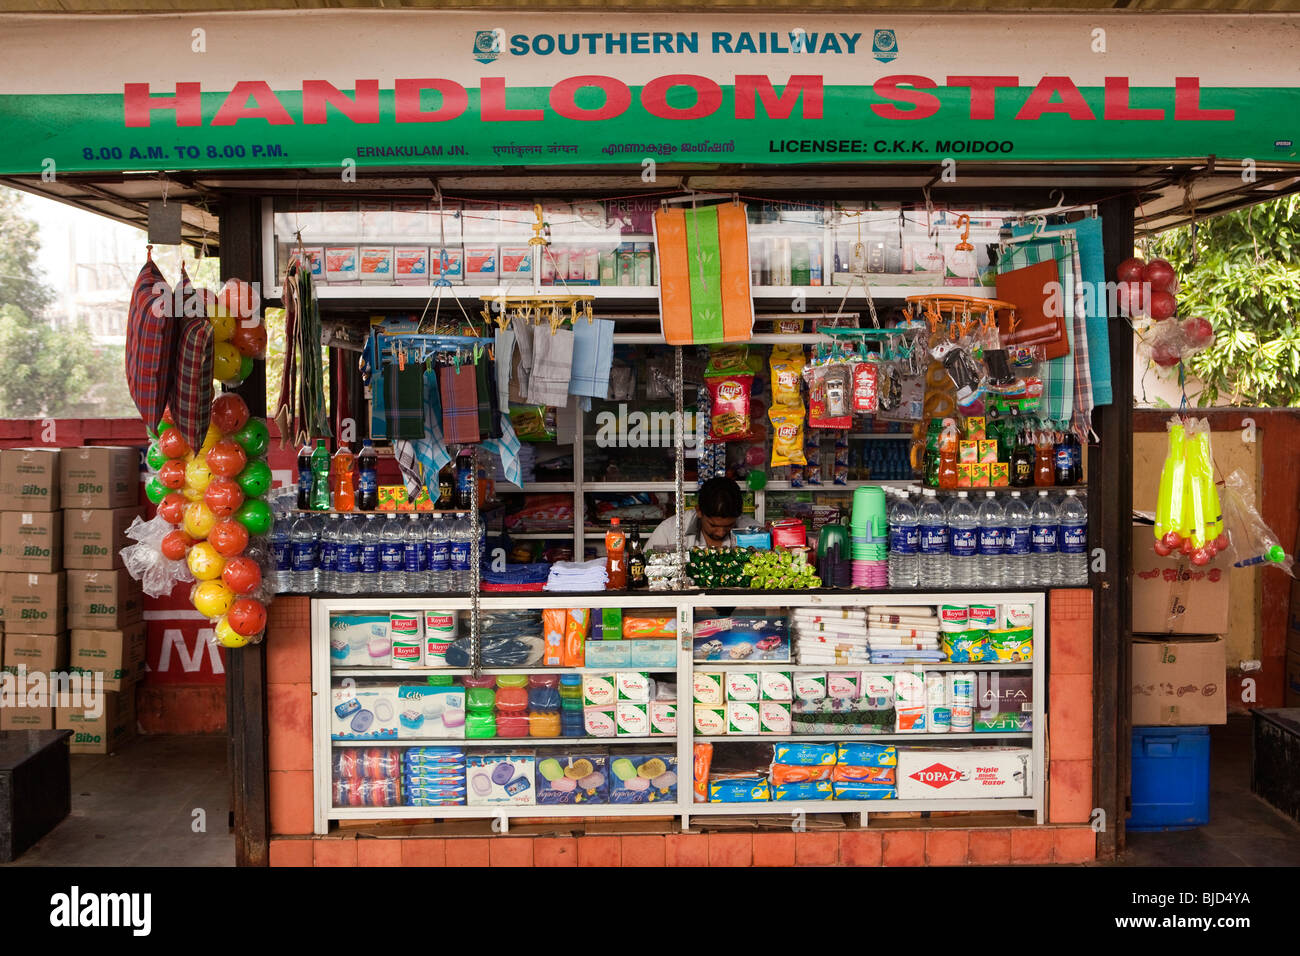 Image result for water bottle in railway station stall